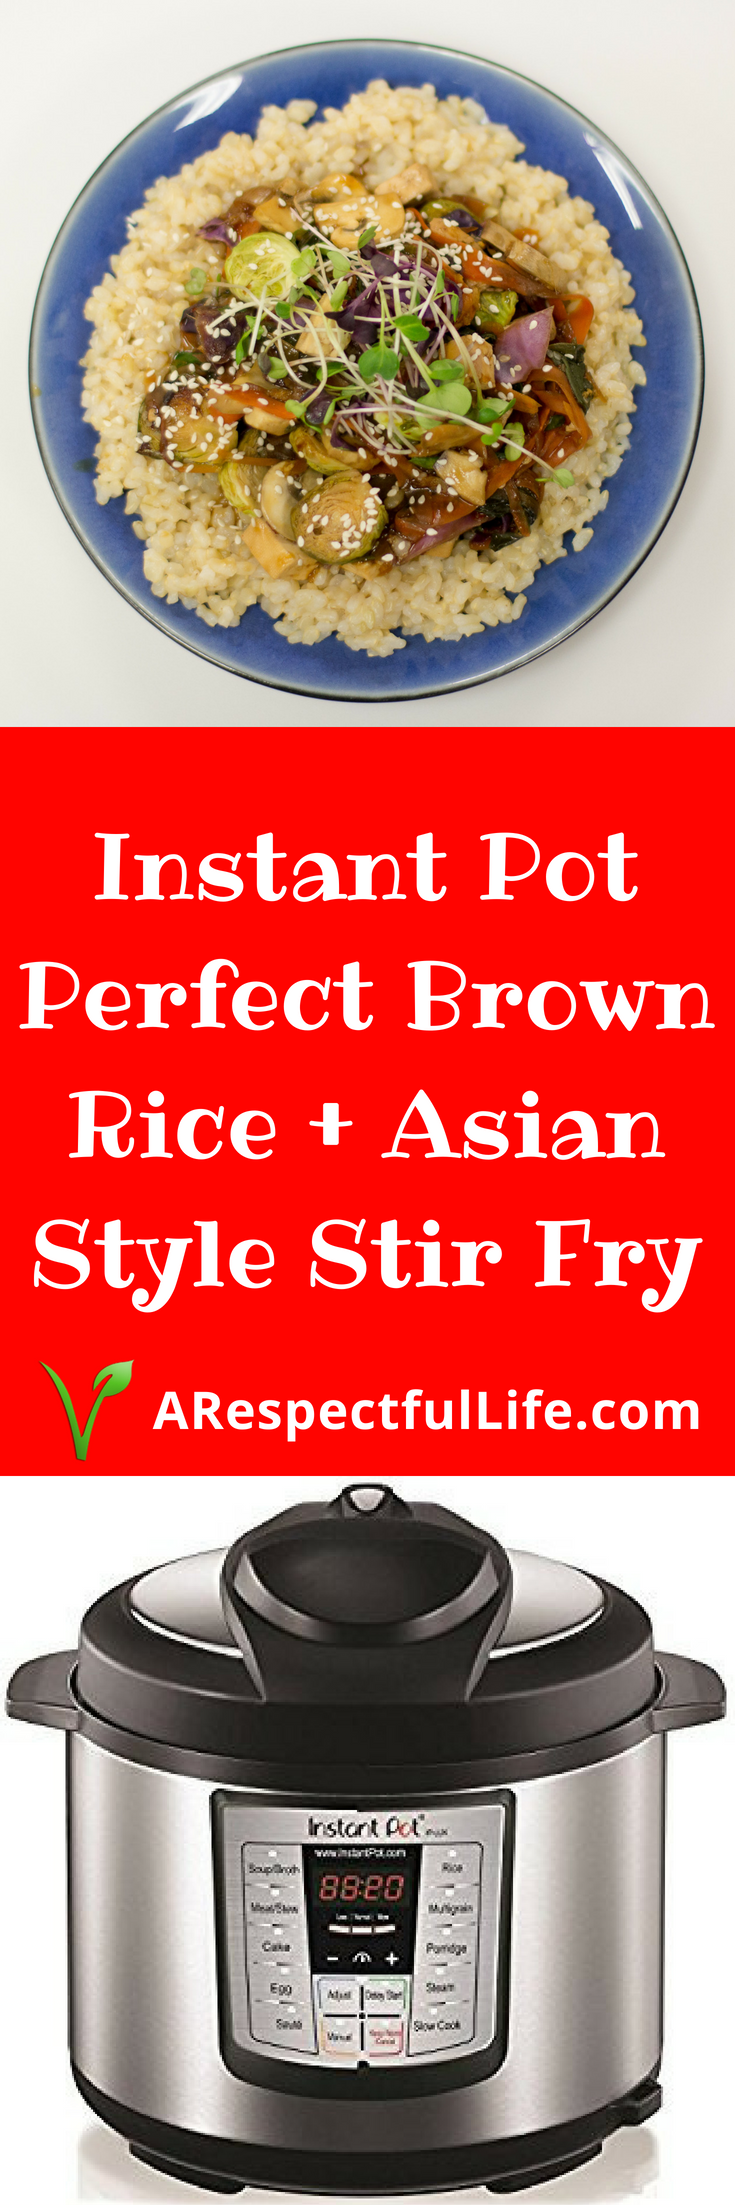 Instant Pot Perfect Brown Rice and Asian Stir Fry